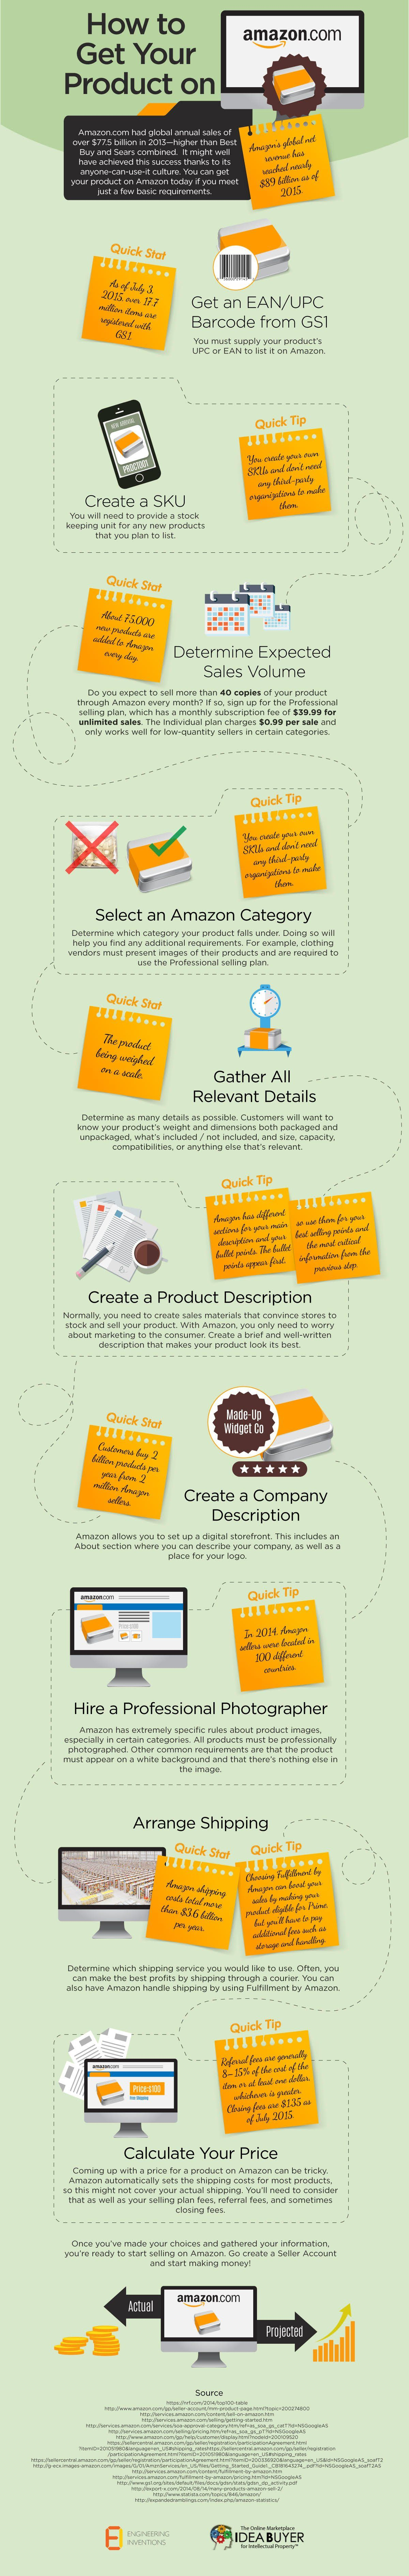 10 Steps to Selling Your Product on Amazon (Infographic